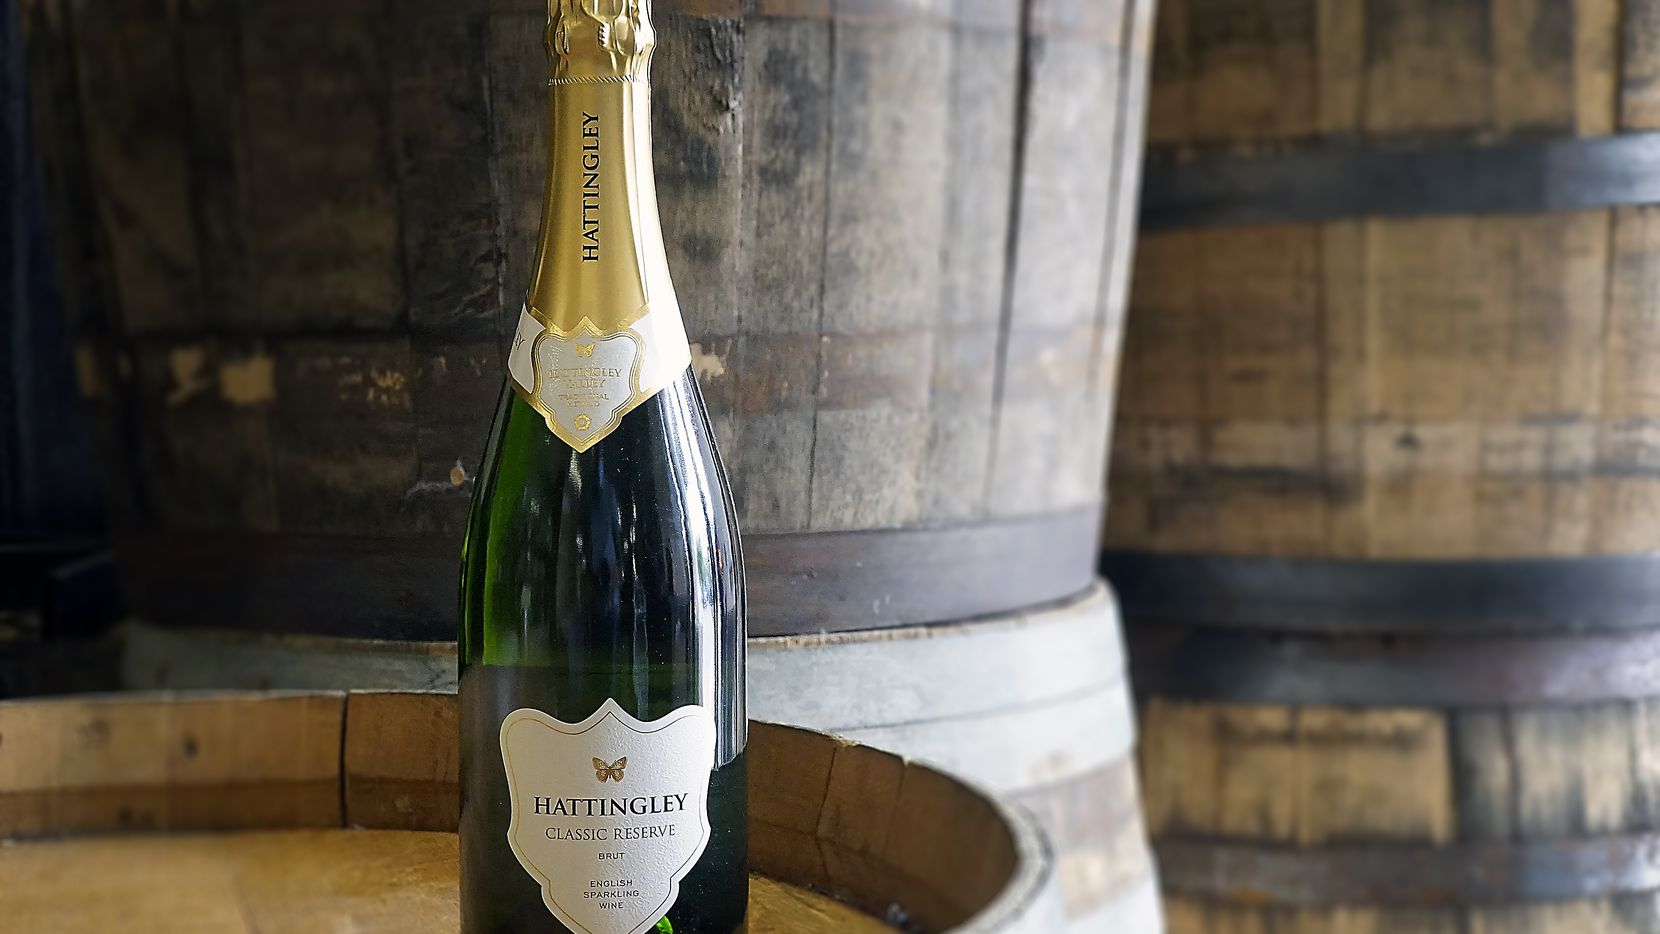 Hattingley Classic Reserve is one of the British sparkling wines carried at Pogo's Wine & Spirits on Lovers Lane.